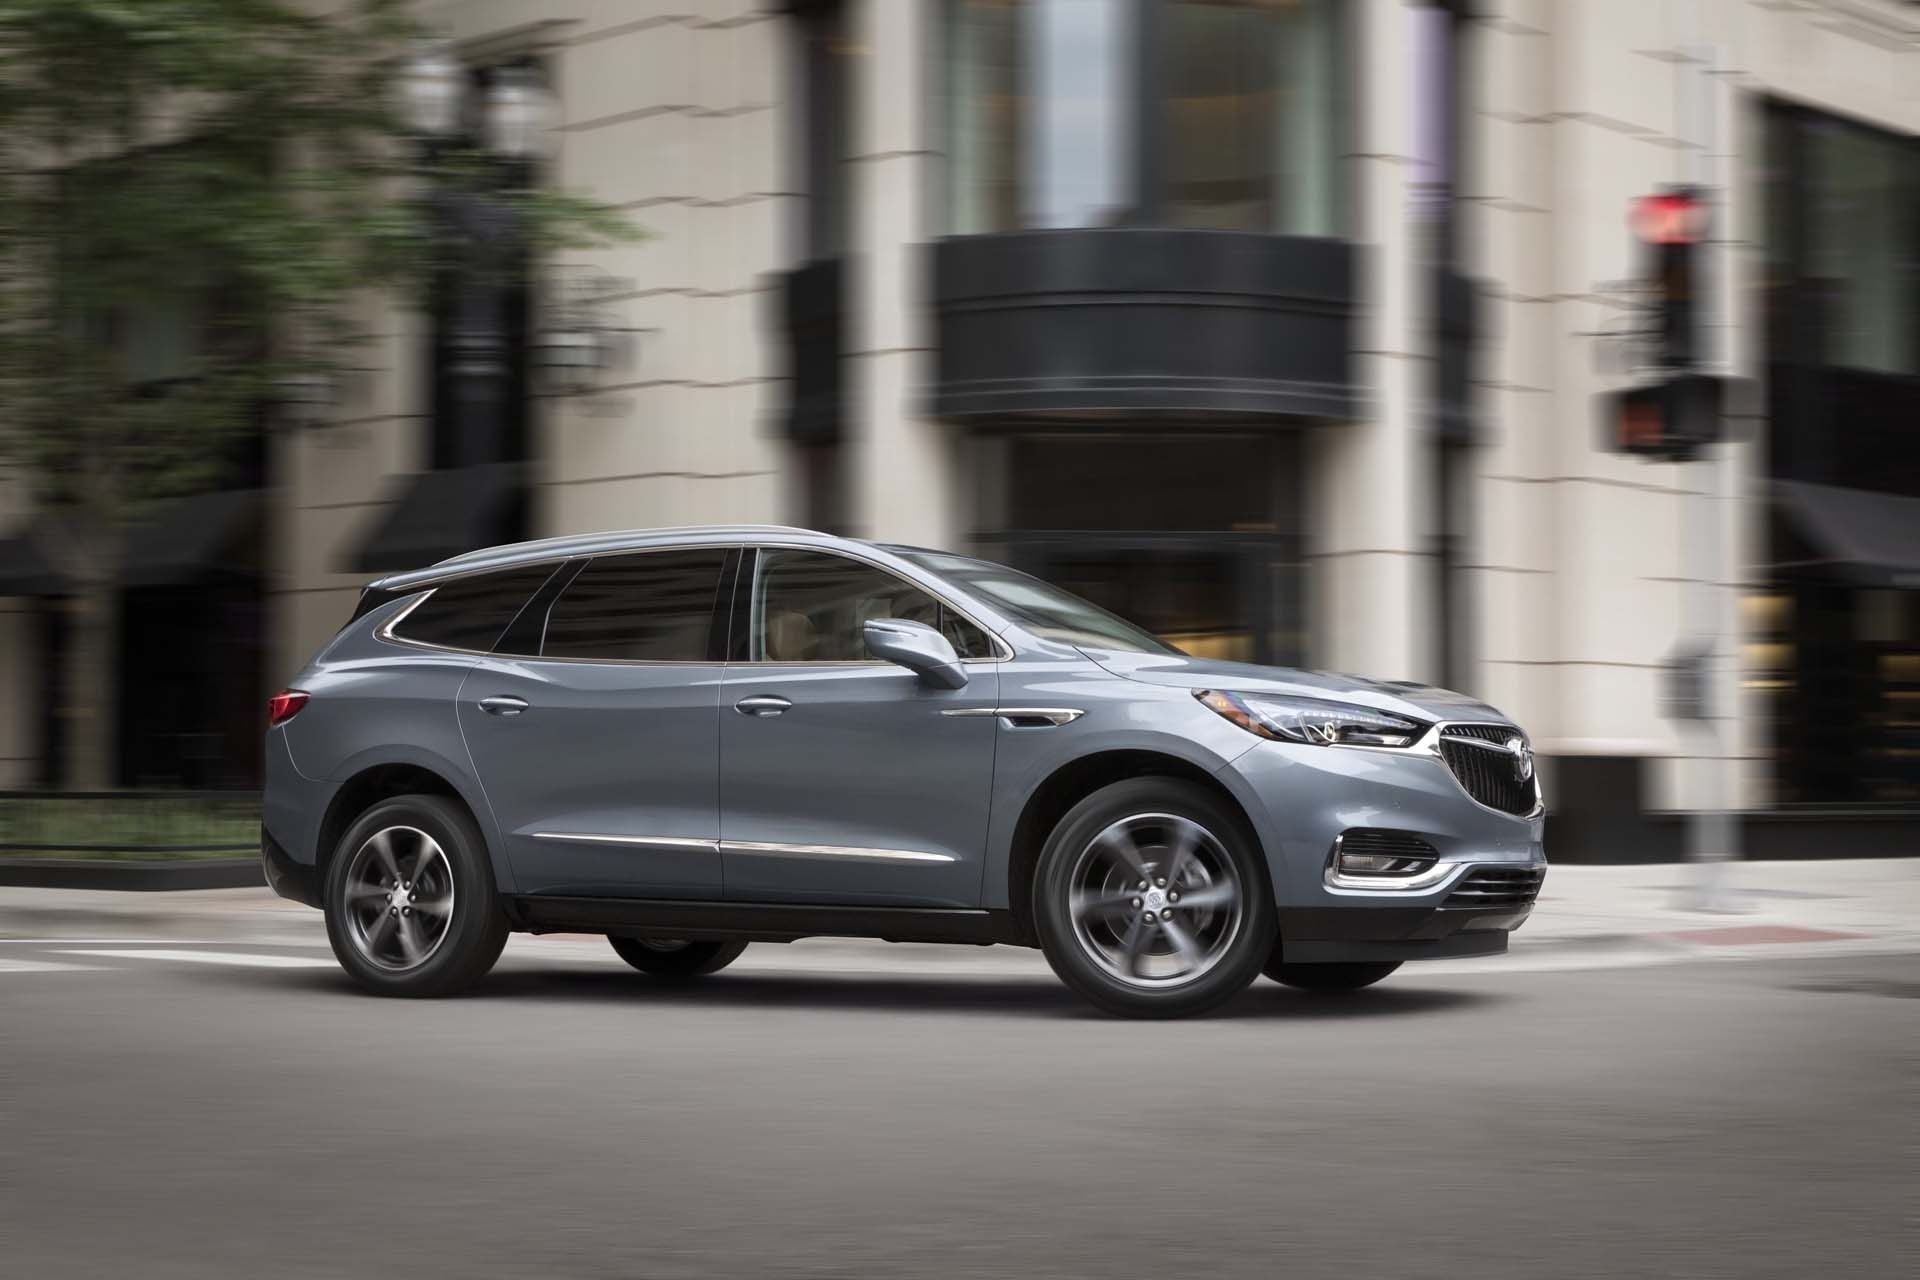 Price Of 2020 Buick Enclave Specs Buick Enclave Luxury Suv Buick